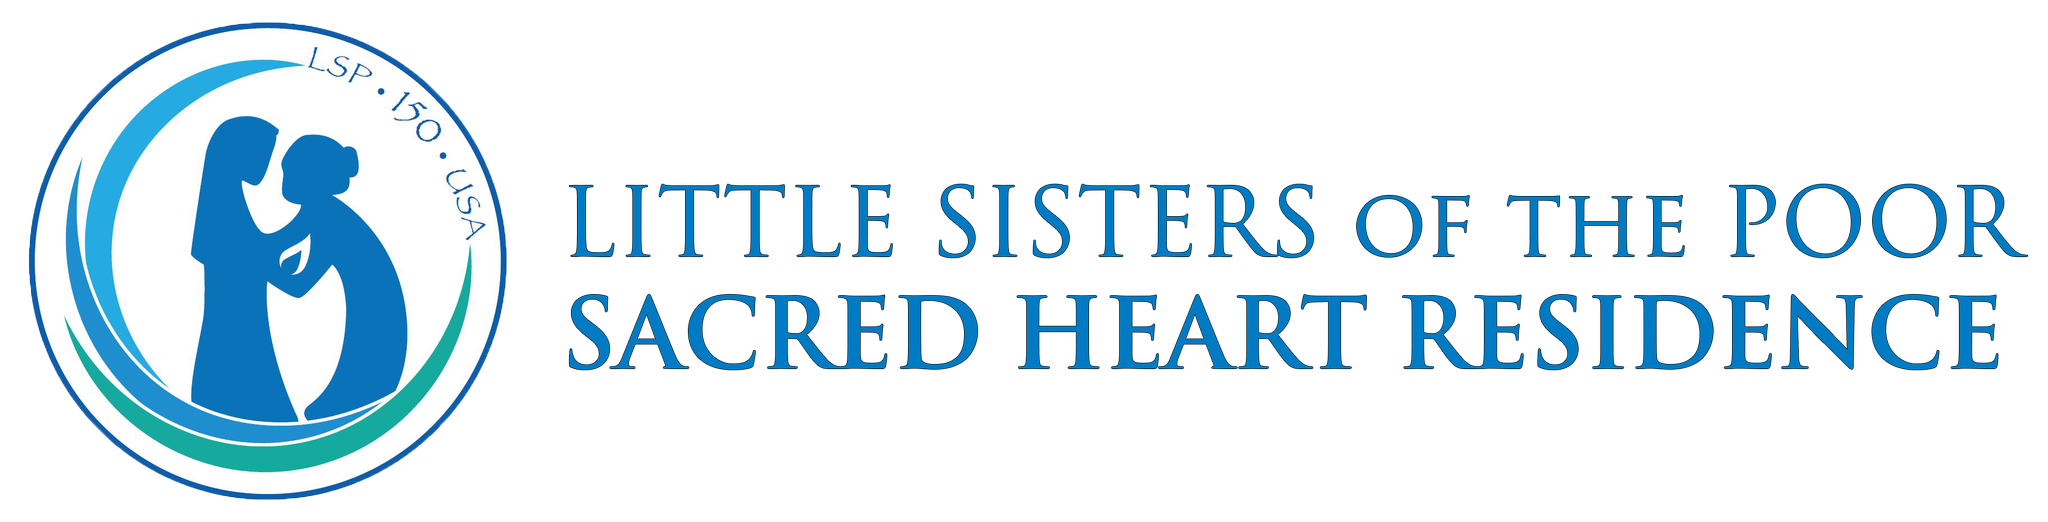 Little Sisters of the Poor Mobile